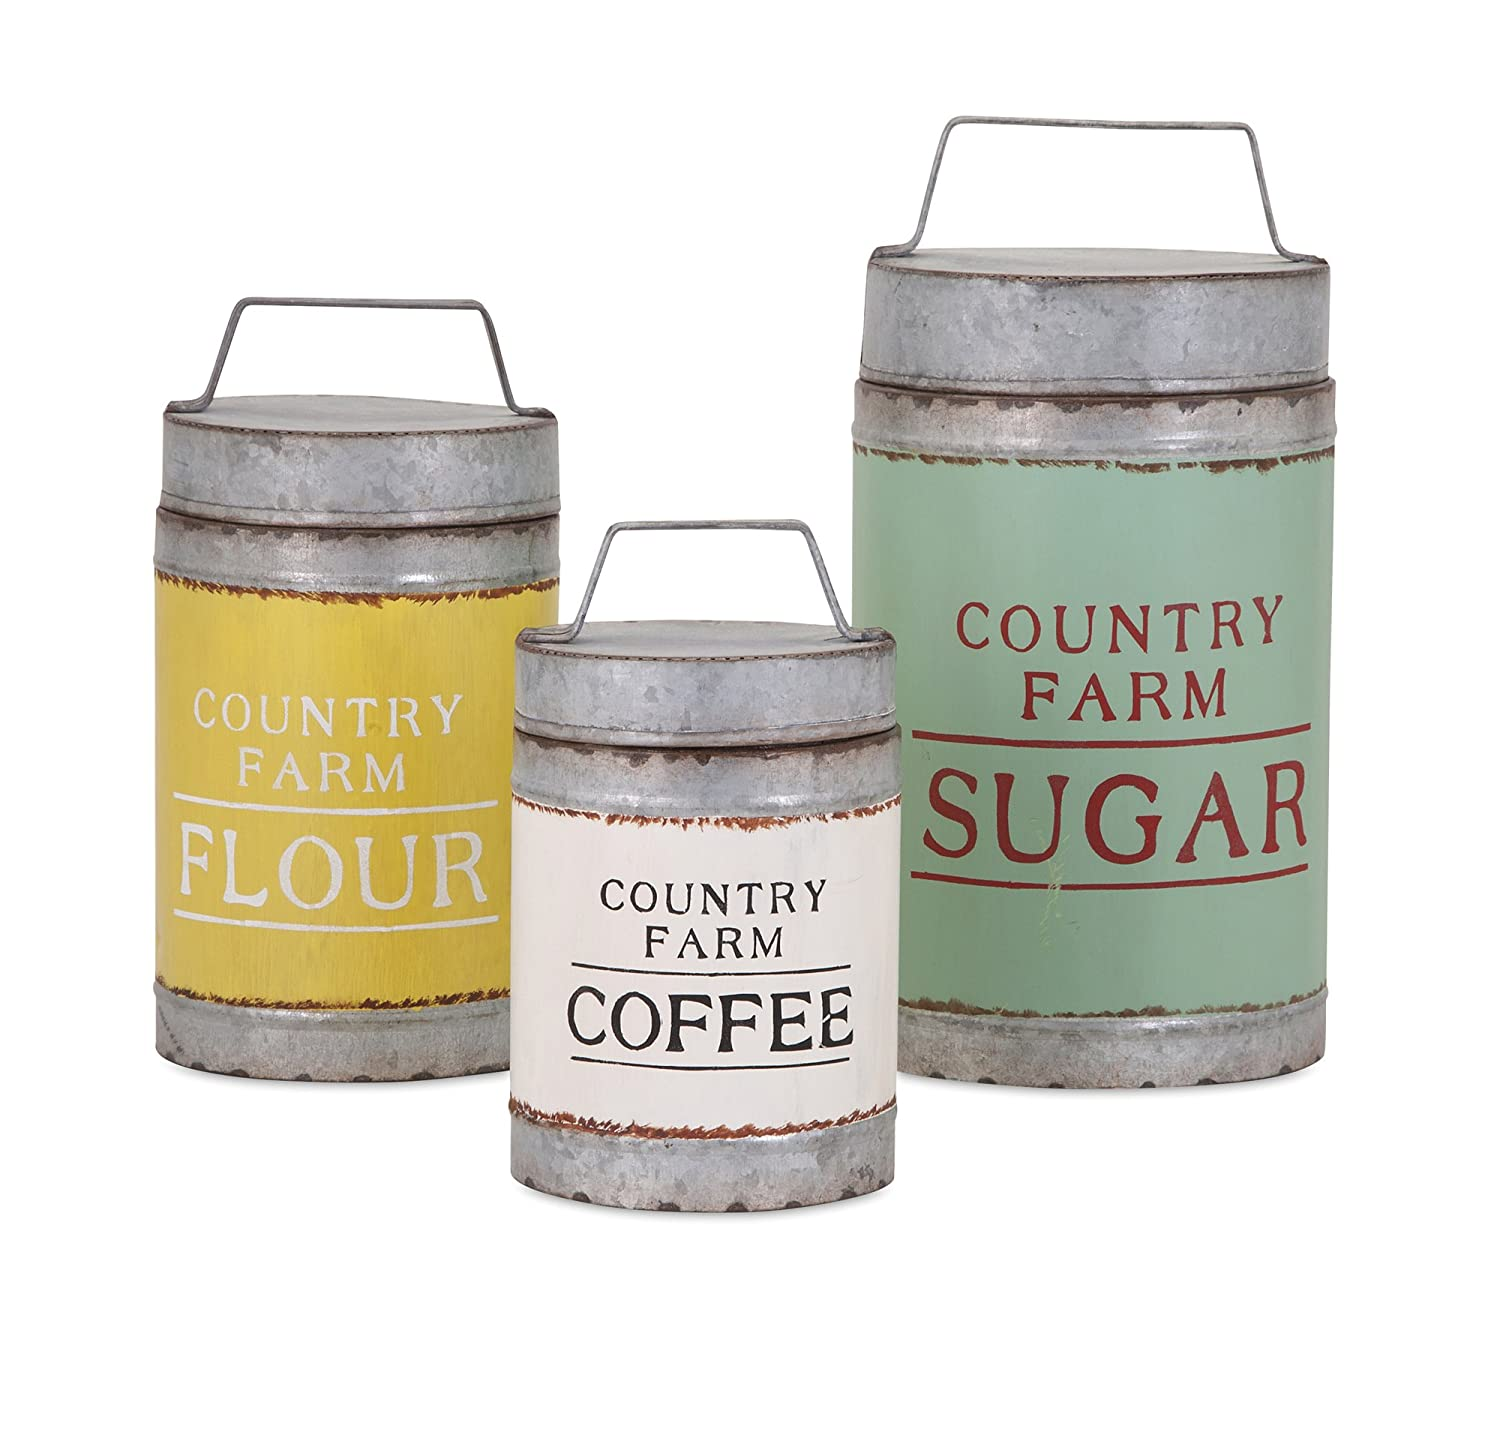 Imax 88665-3 Dairy Barn Decorative Lidded Containers-Set of Three